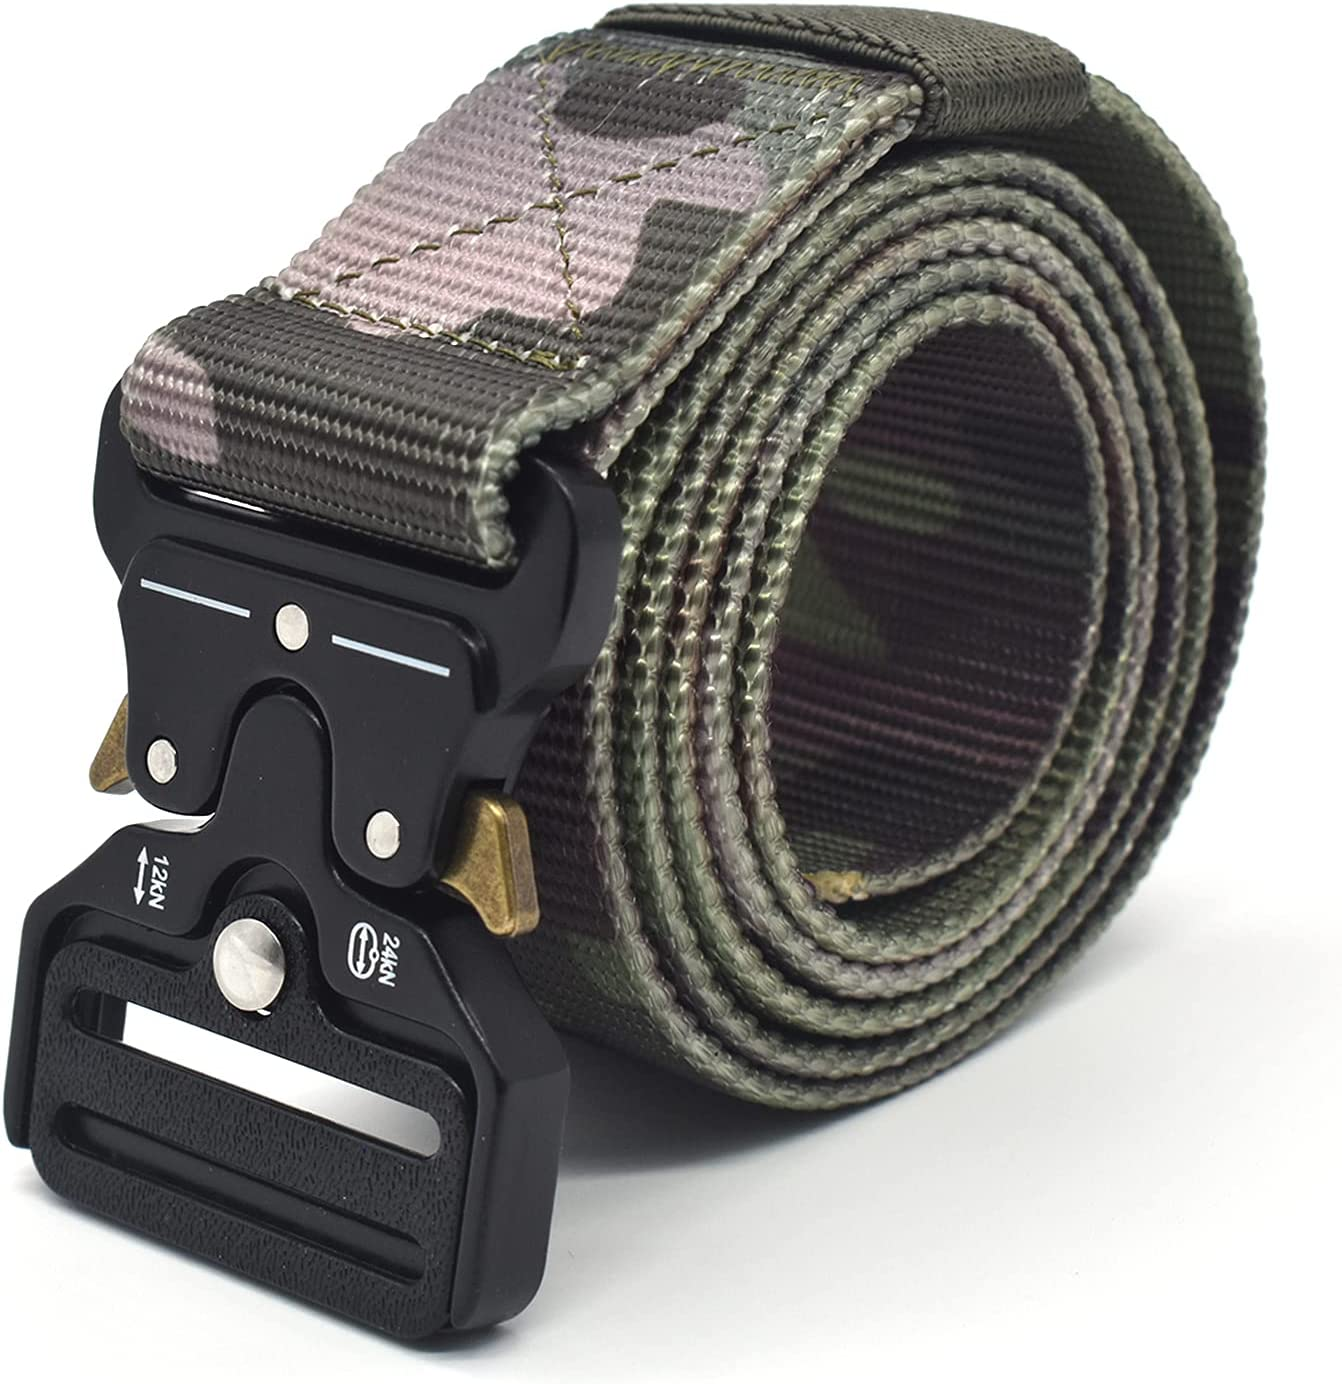 RZJZGZ Nylon Tactical Belt Selling Military Be super welcome with Quick Heavy Duty